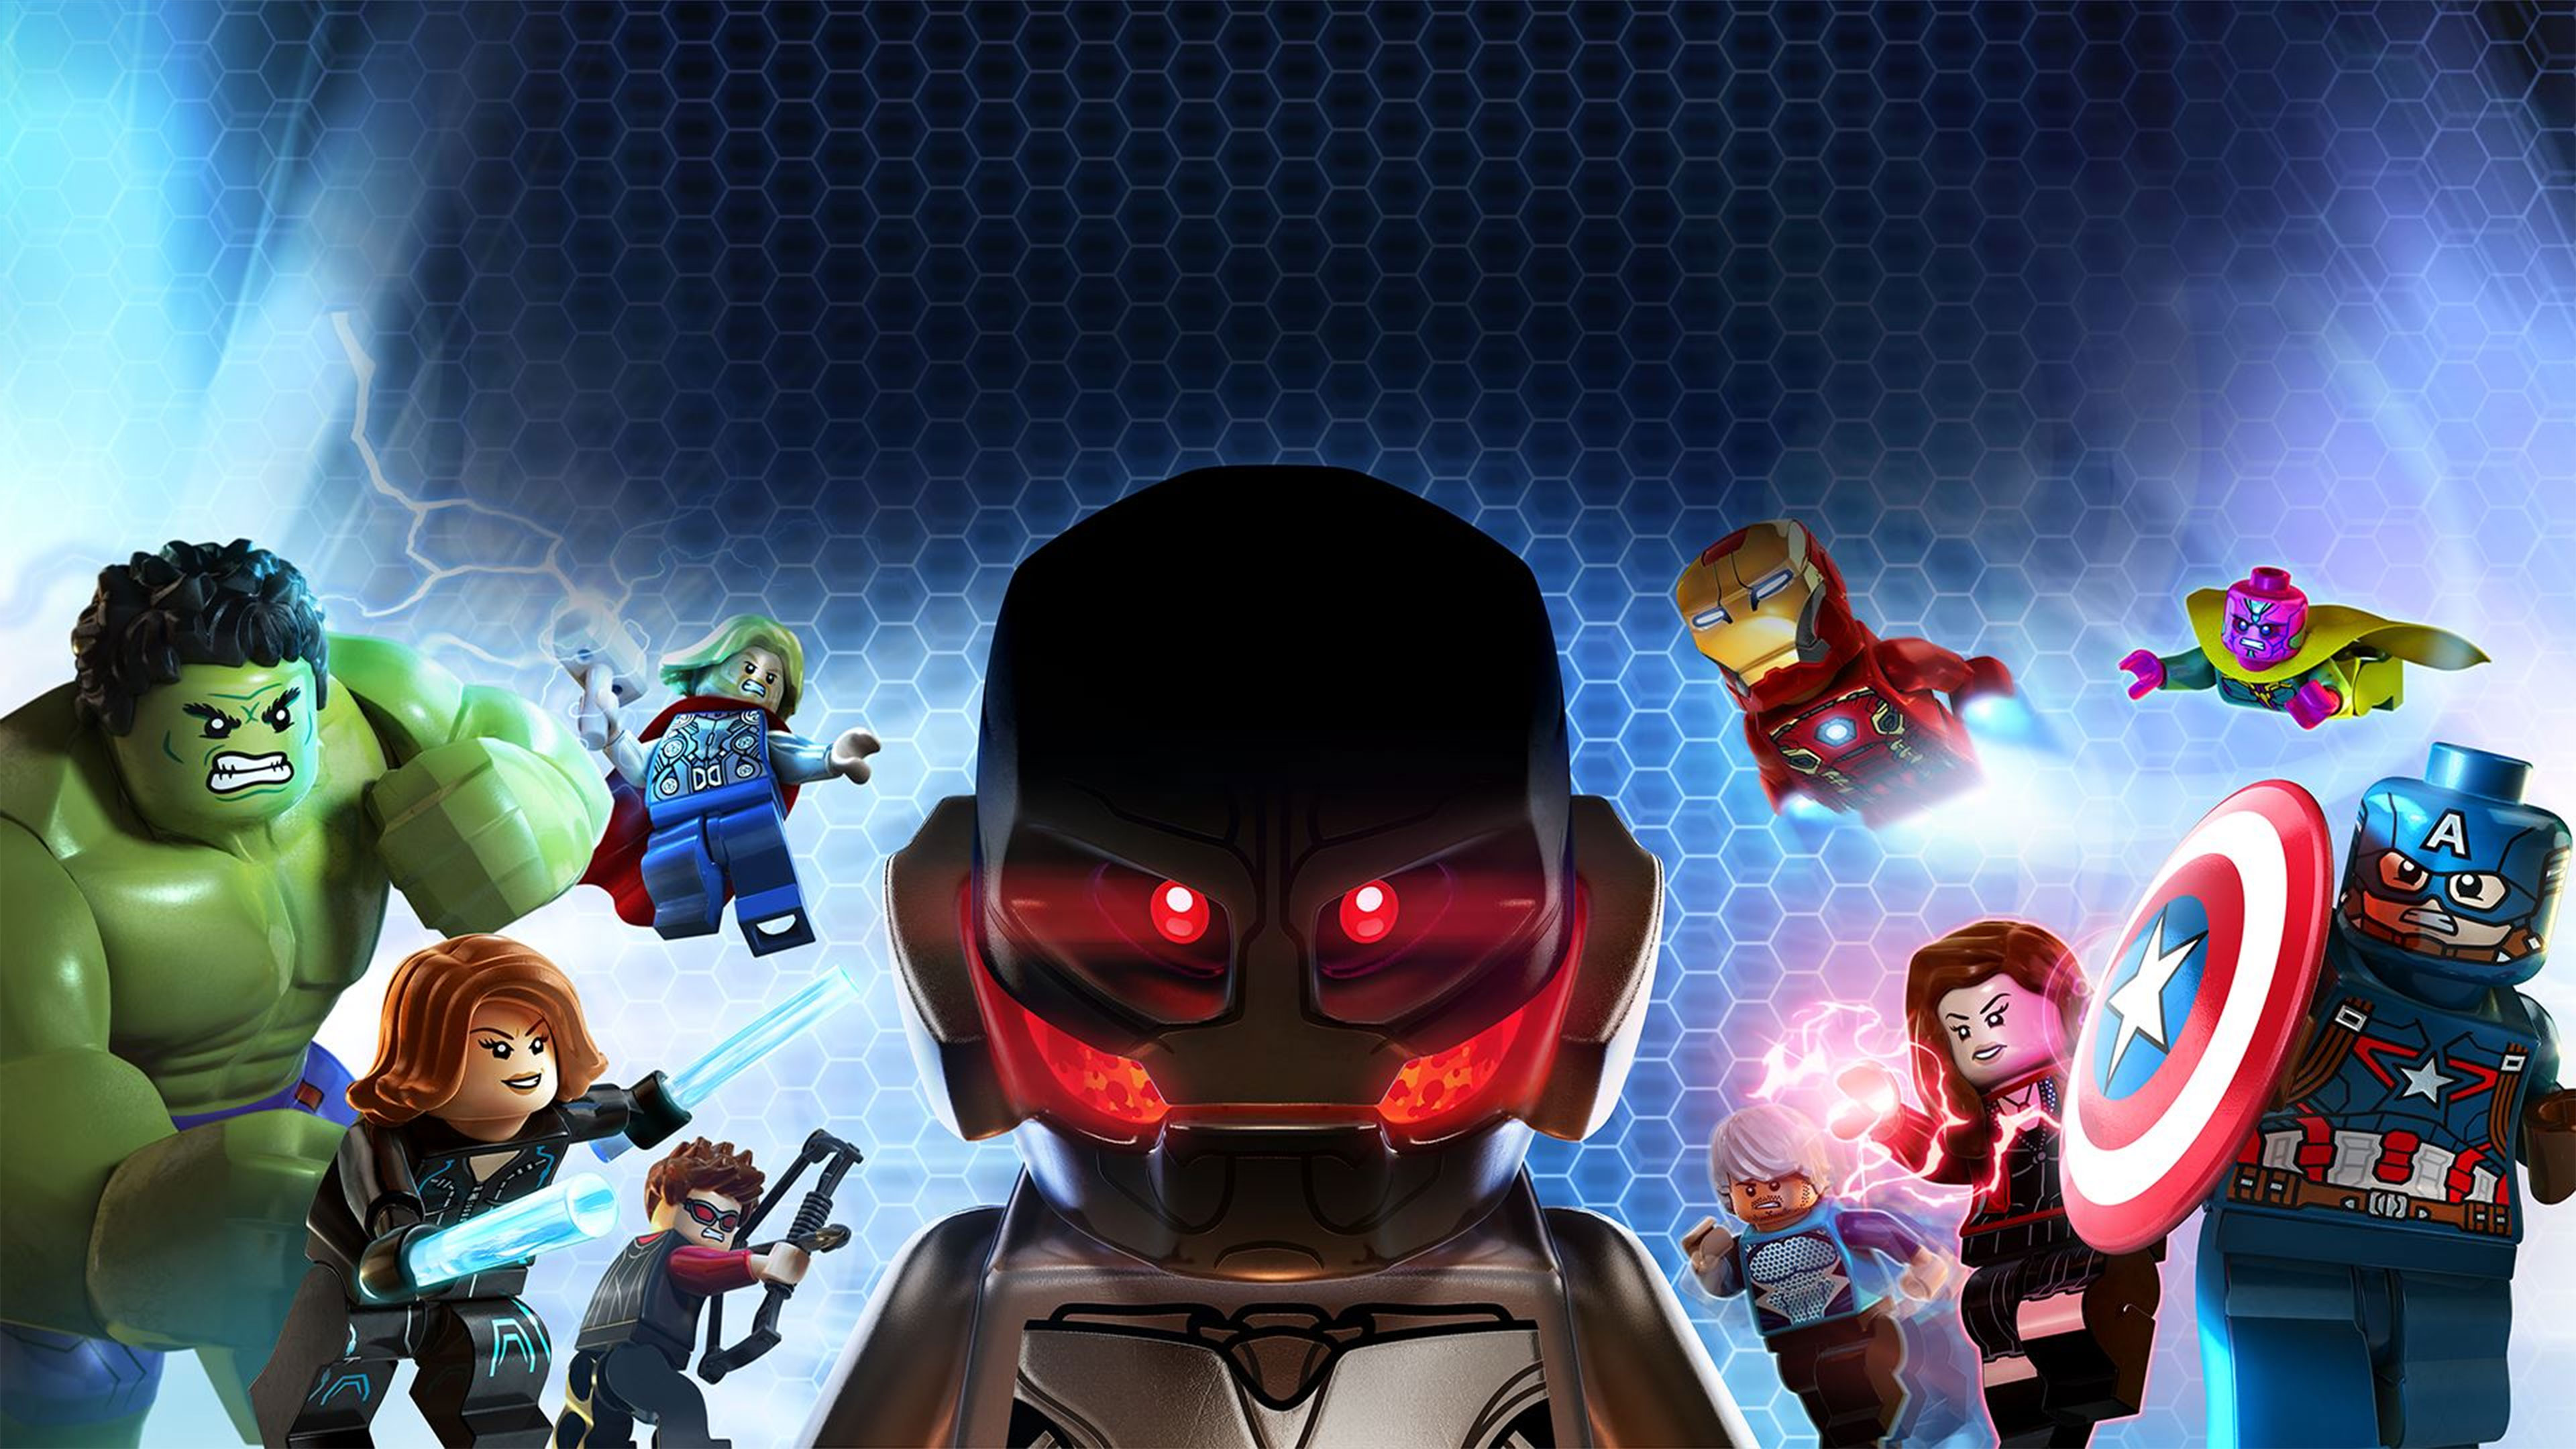 Lego Marvels Avengers Wallpapers In Ultra Hd 4k Gameranx